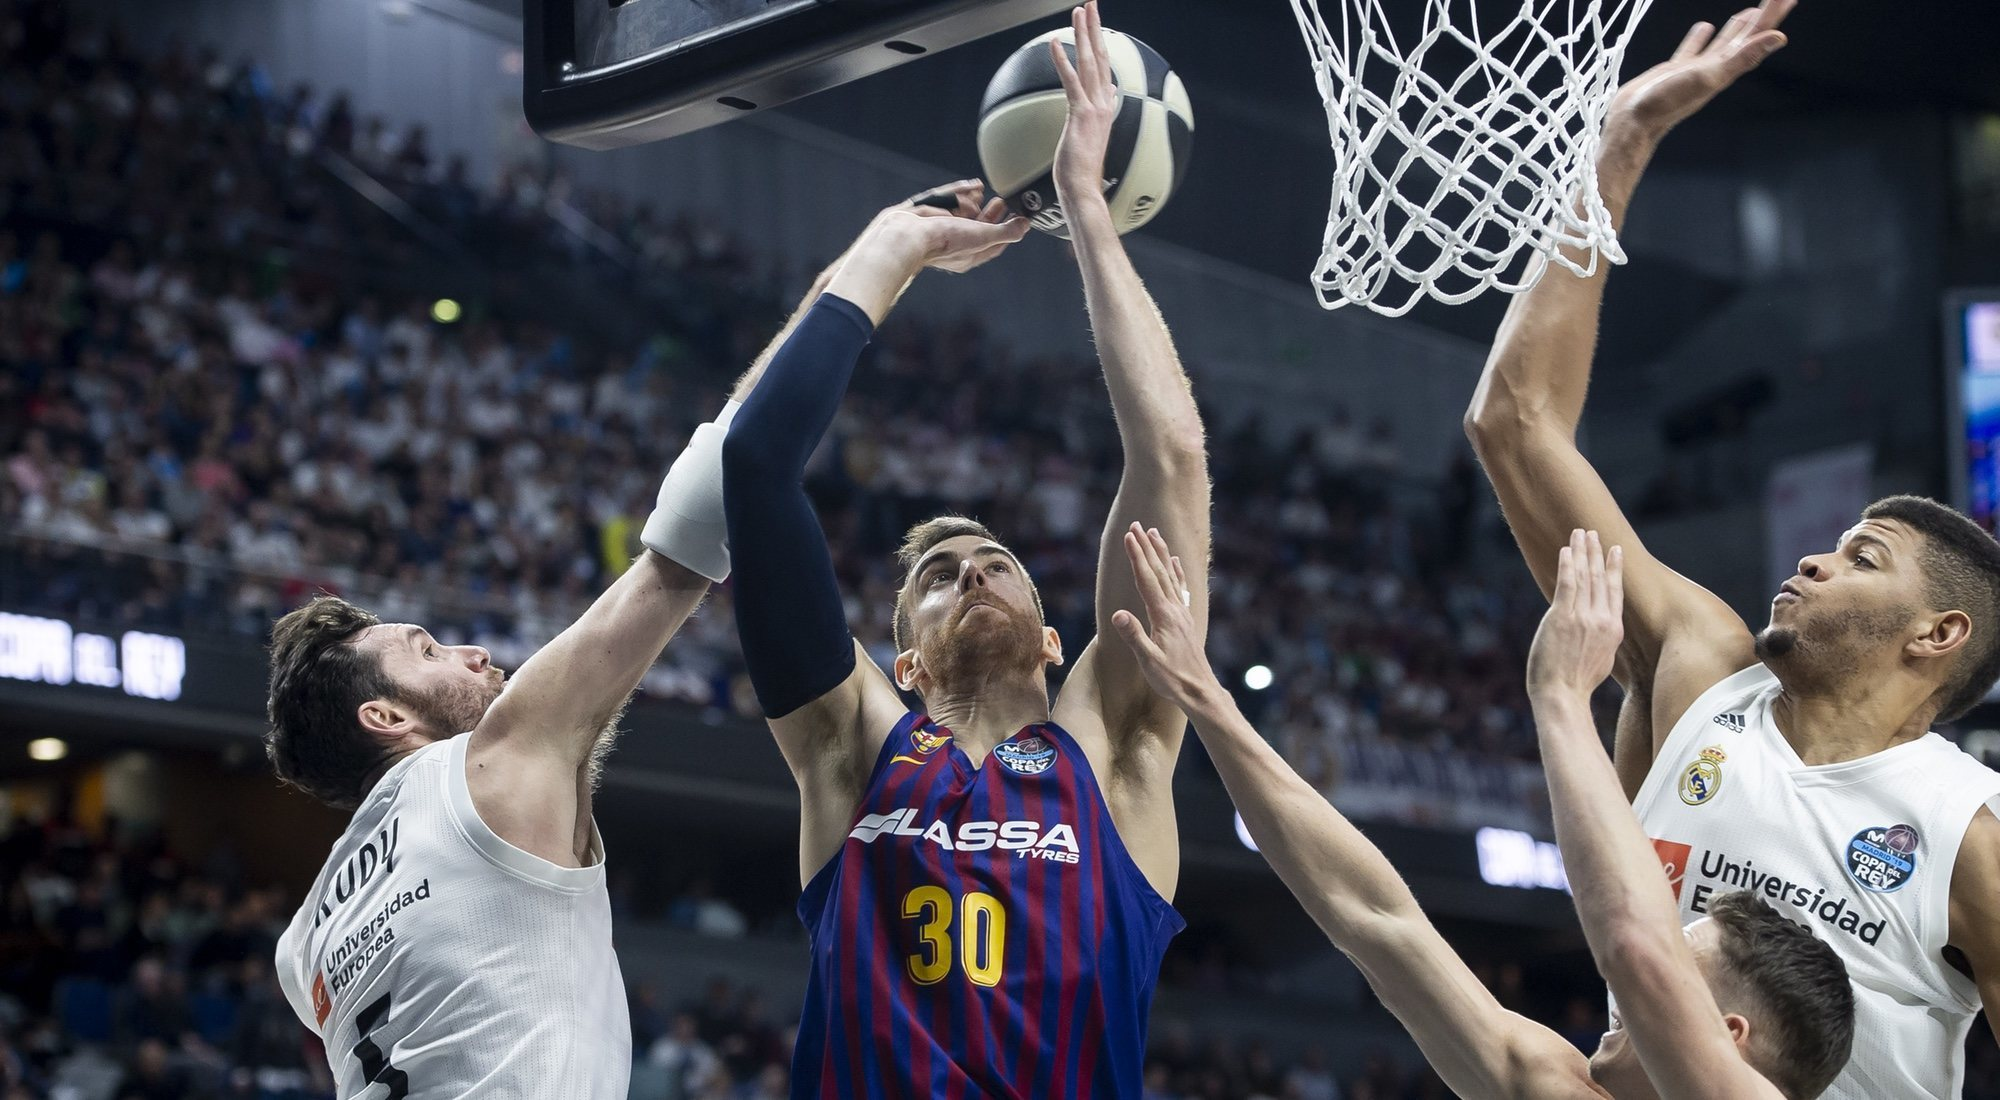 Real Madrid vs ACB: claves de la mayor crisis del baloncesto español